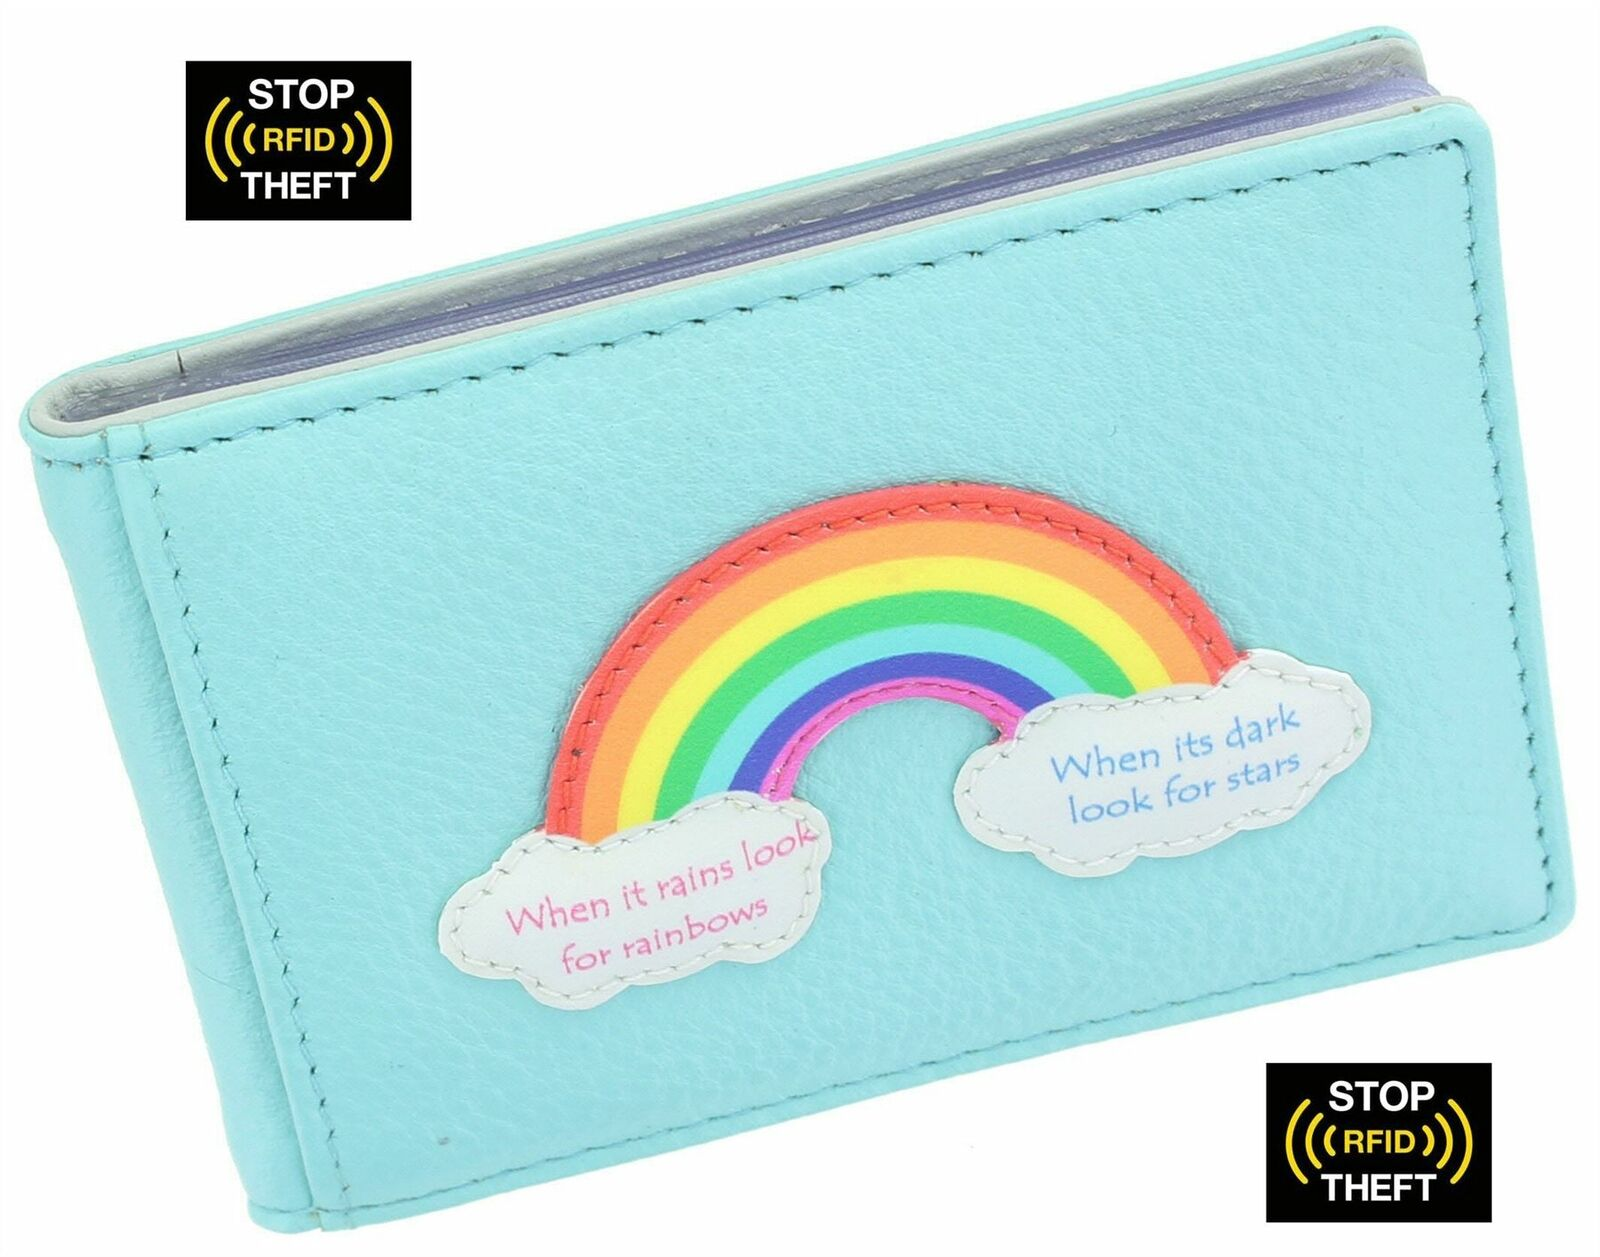 Mala Leather Rainbow Collection Leather Credit Card Holder RFID Blocking 657_49